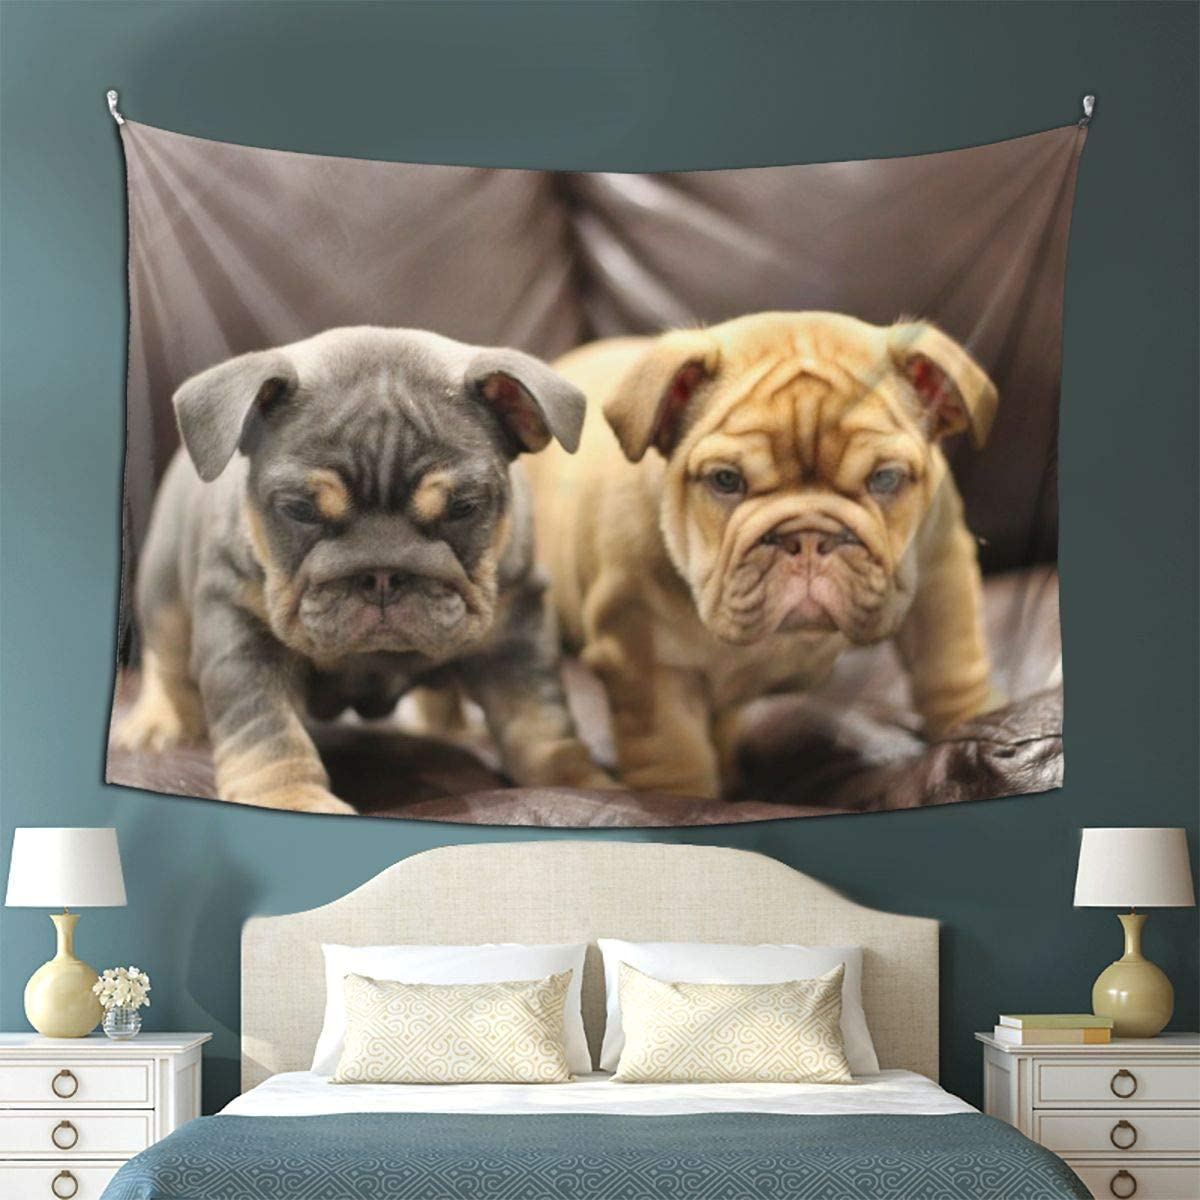 Amazon Com Gonghe Puppies Bulldog Tapestry Wall Hanging 3d Printing Blanket Wall Art For Living Room Bedroom Home Decor 80x60in Home Kitchen